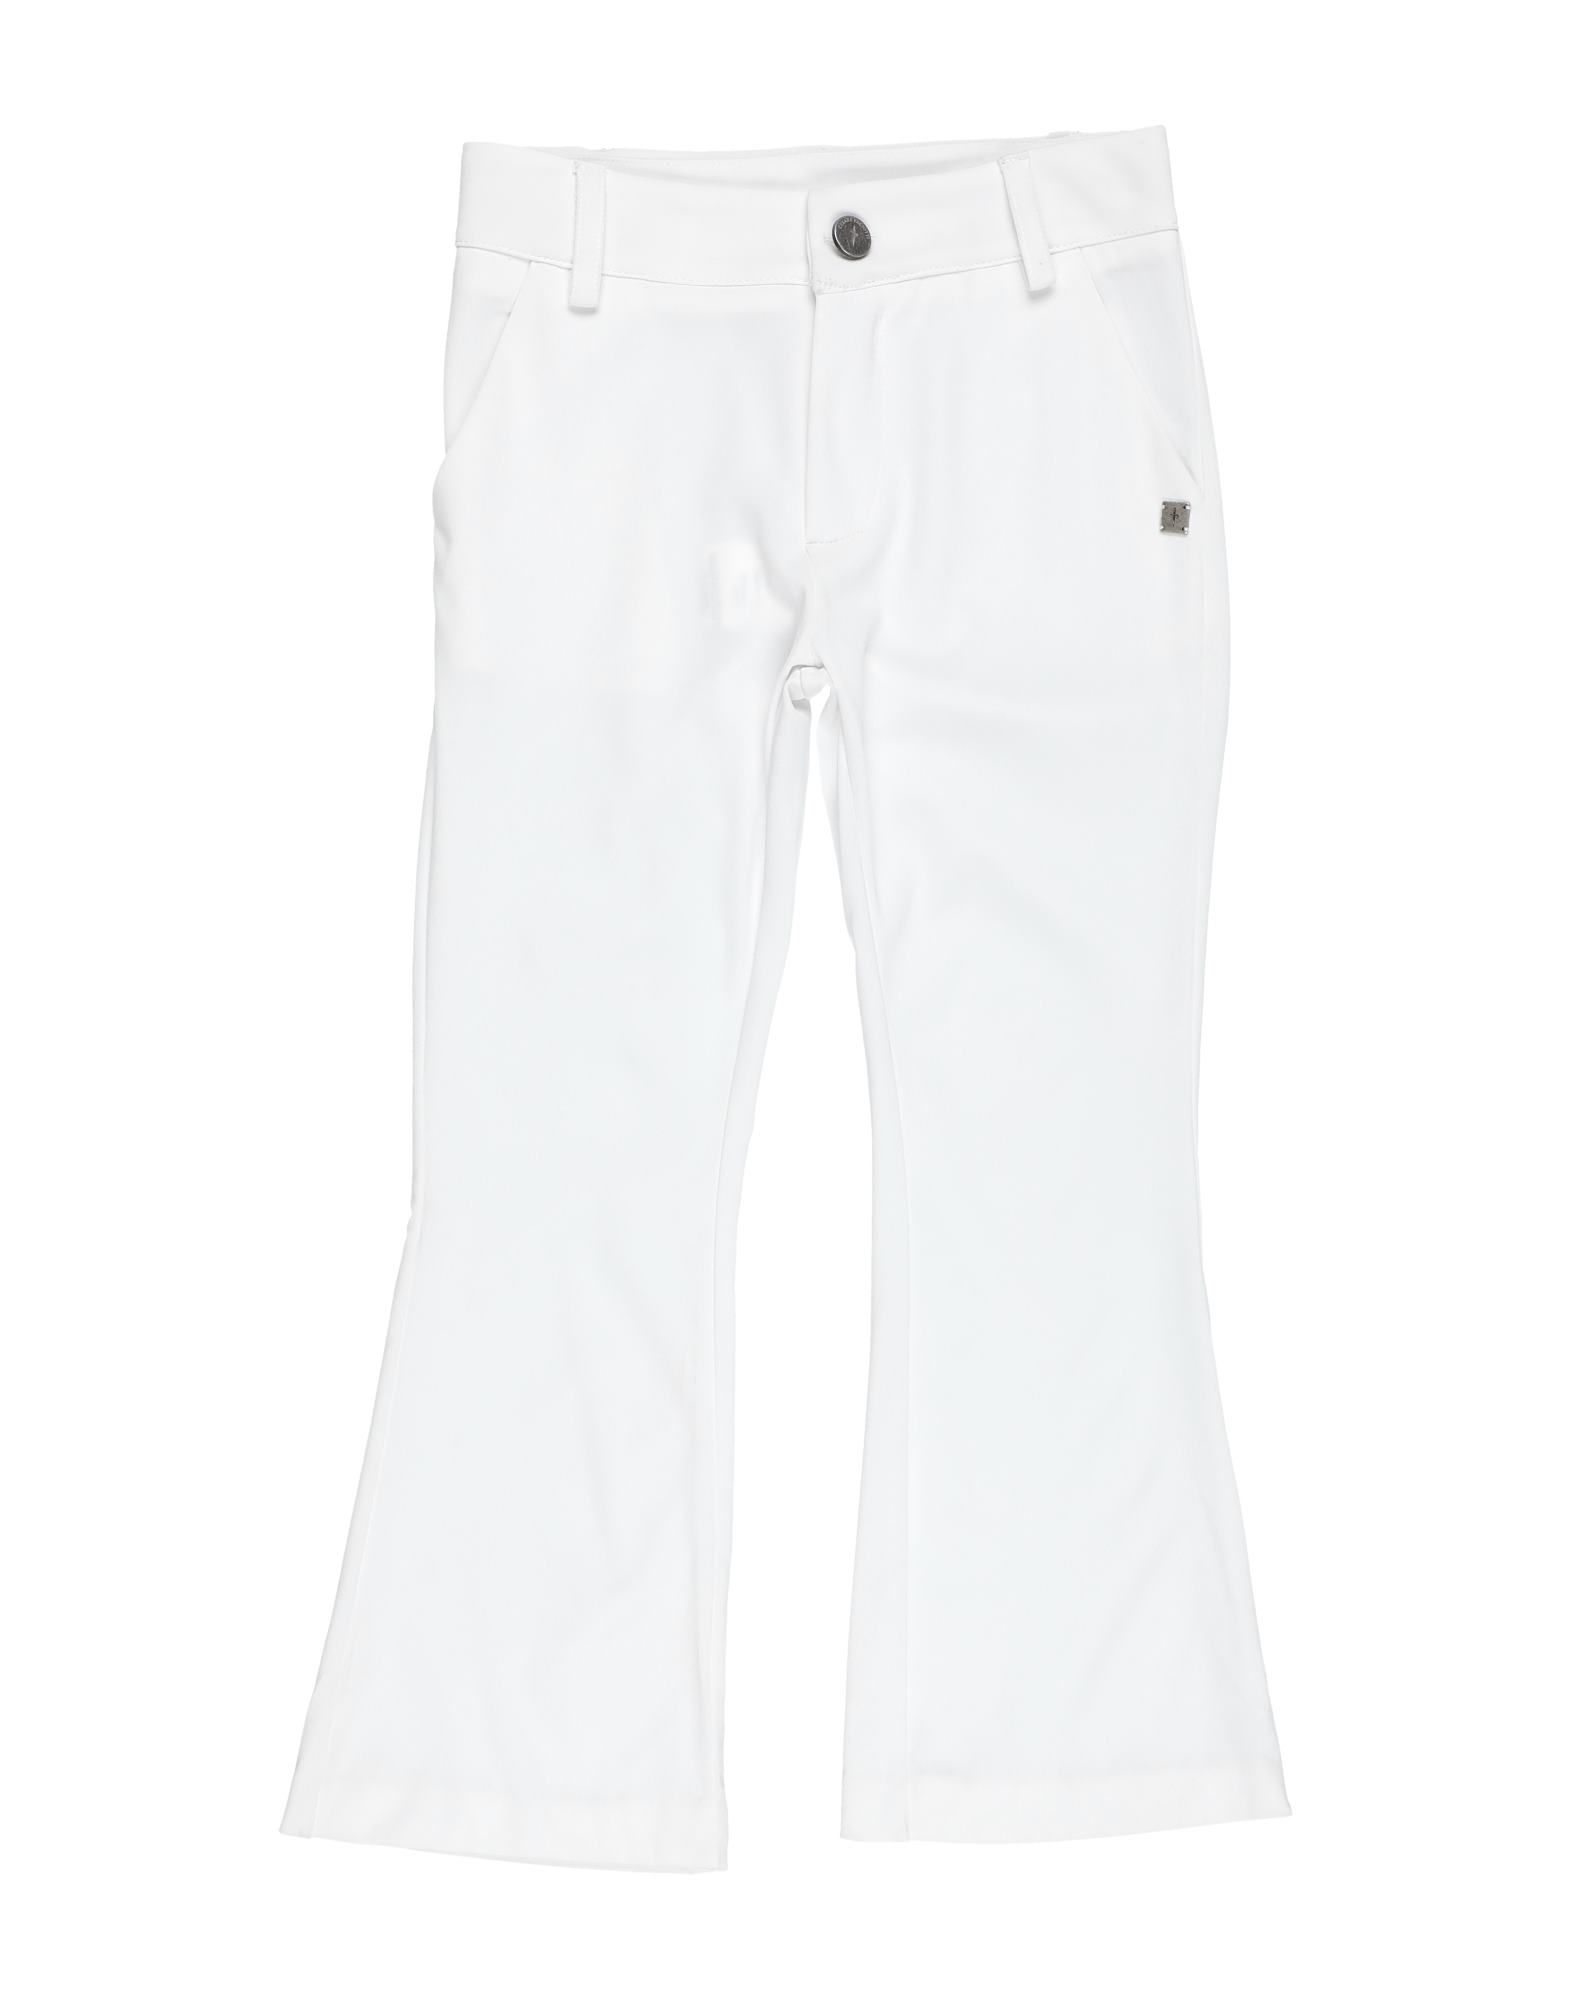 Cesare Paciotti Kids' Casual Pants In White